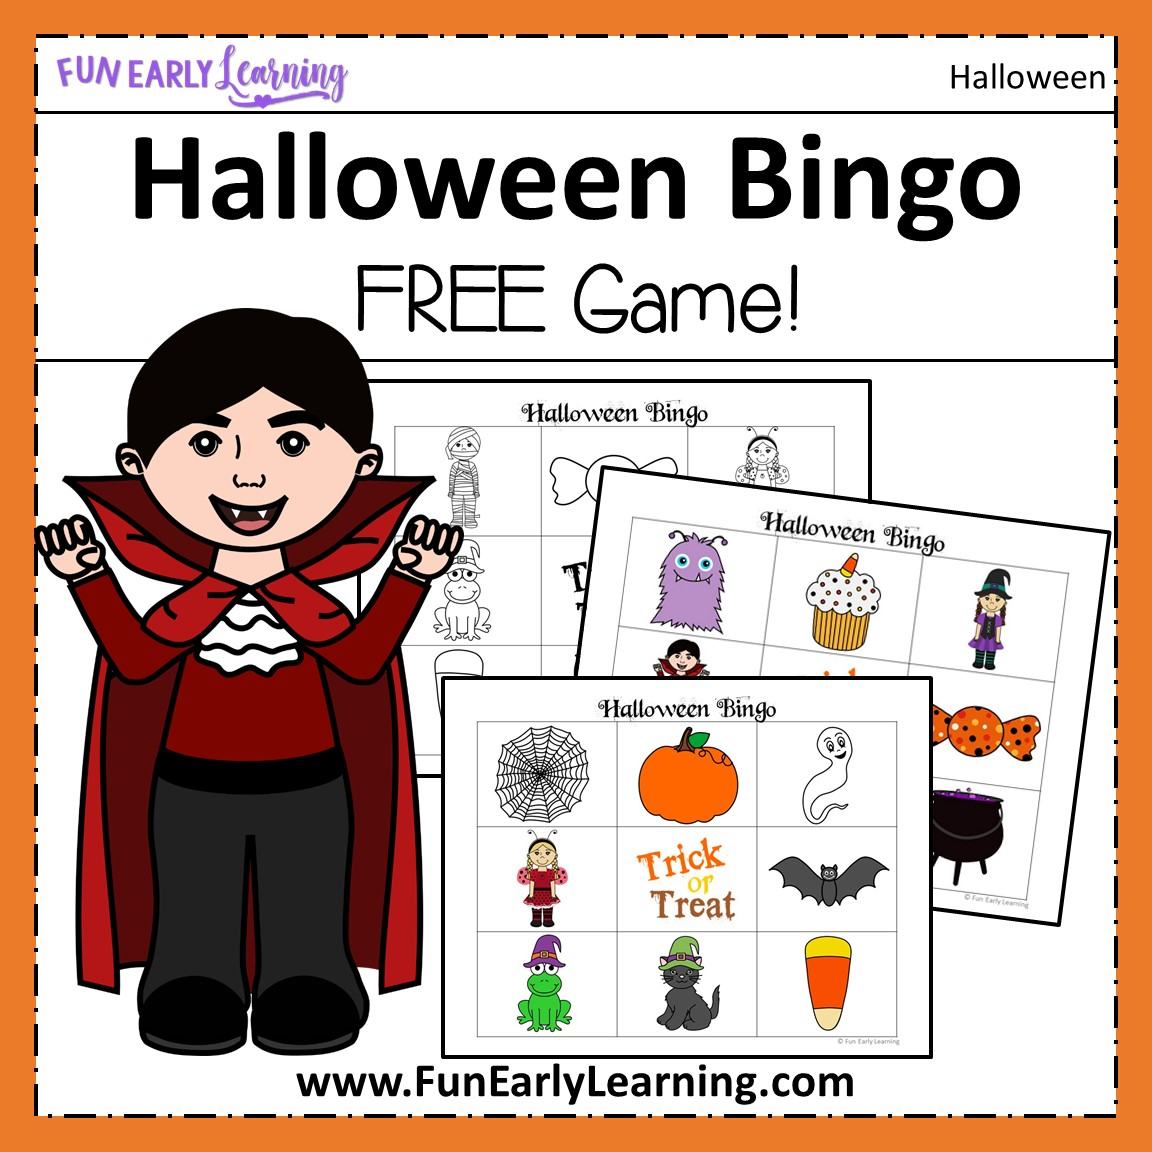 graphic regarding Halloween Bingo Printable identified as Halloween Bingo Totally free Printable for Preschool and Kindergarten